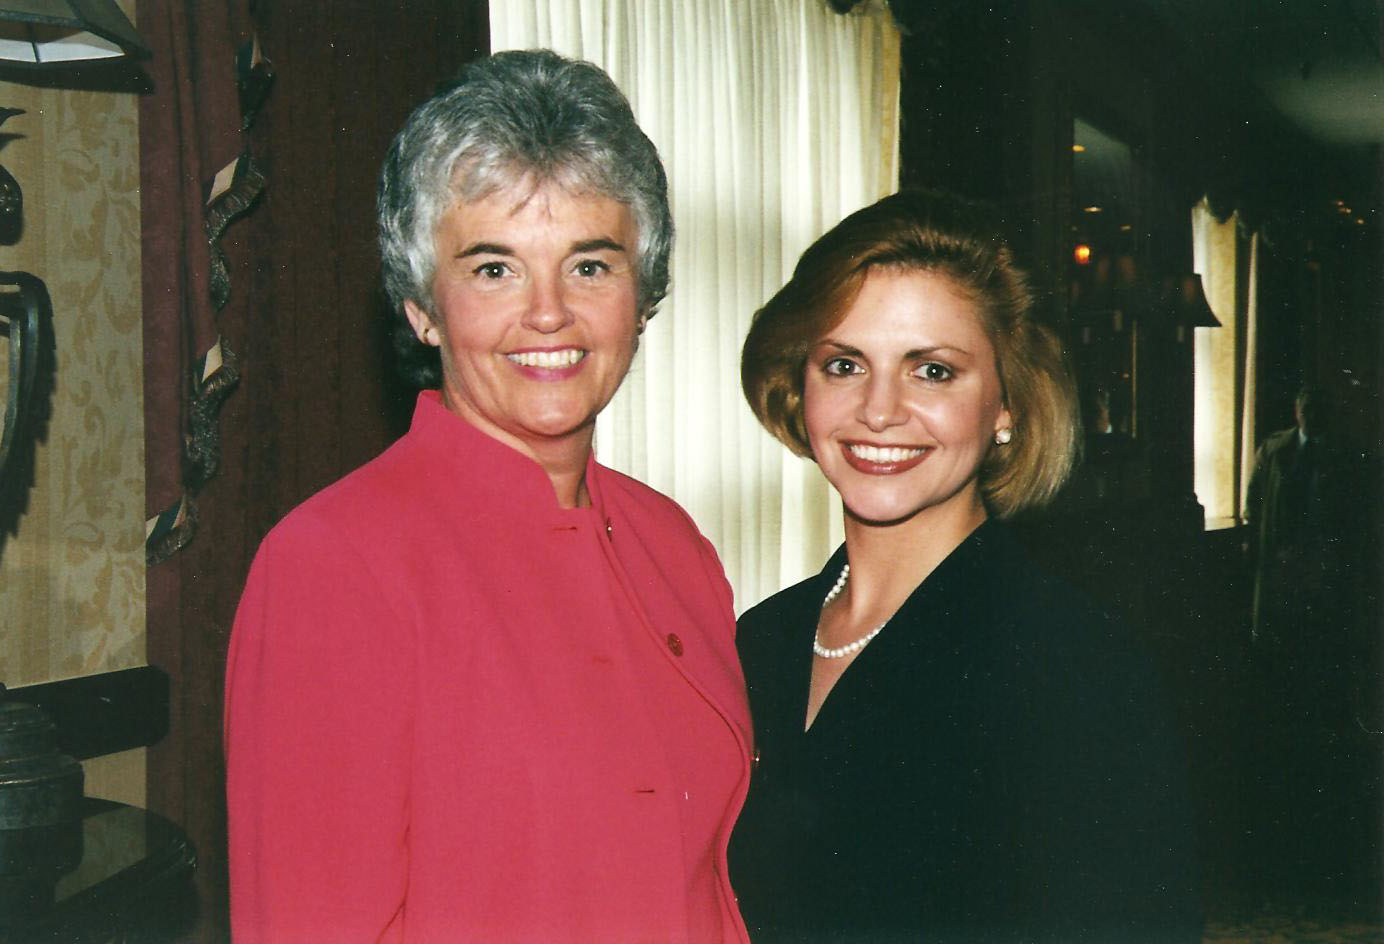 Pat and NJ First lady Dina Matos McGreevey